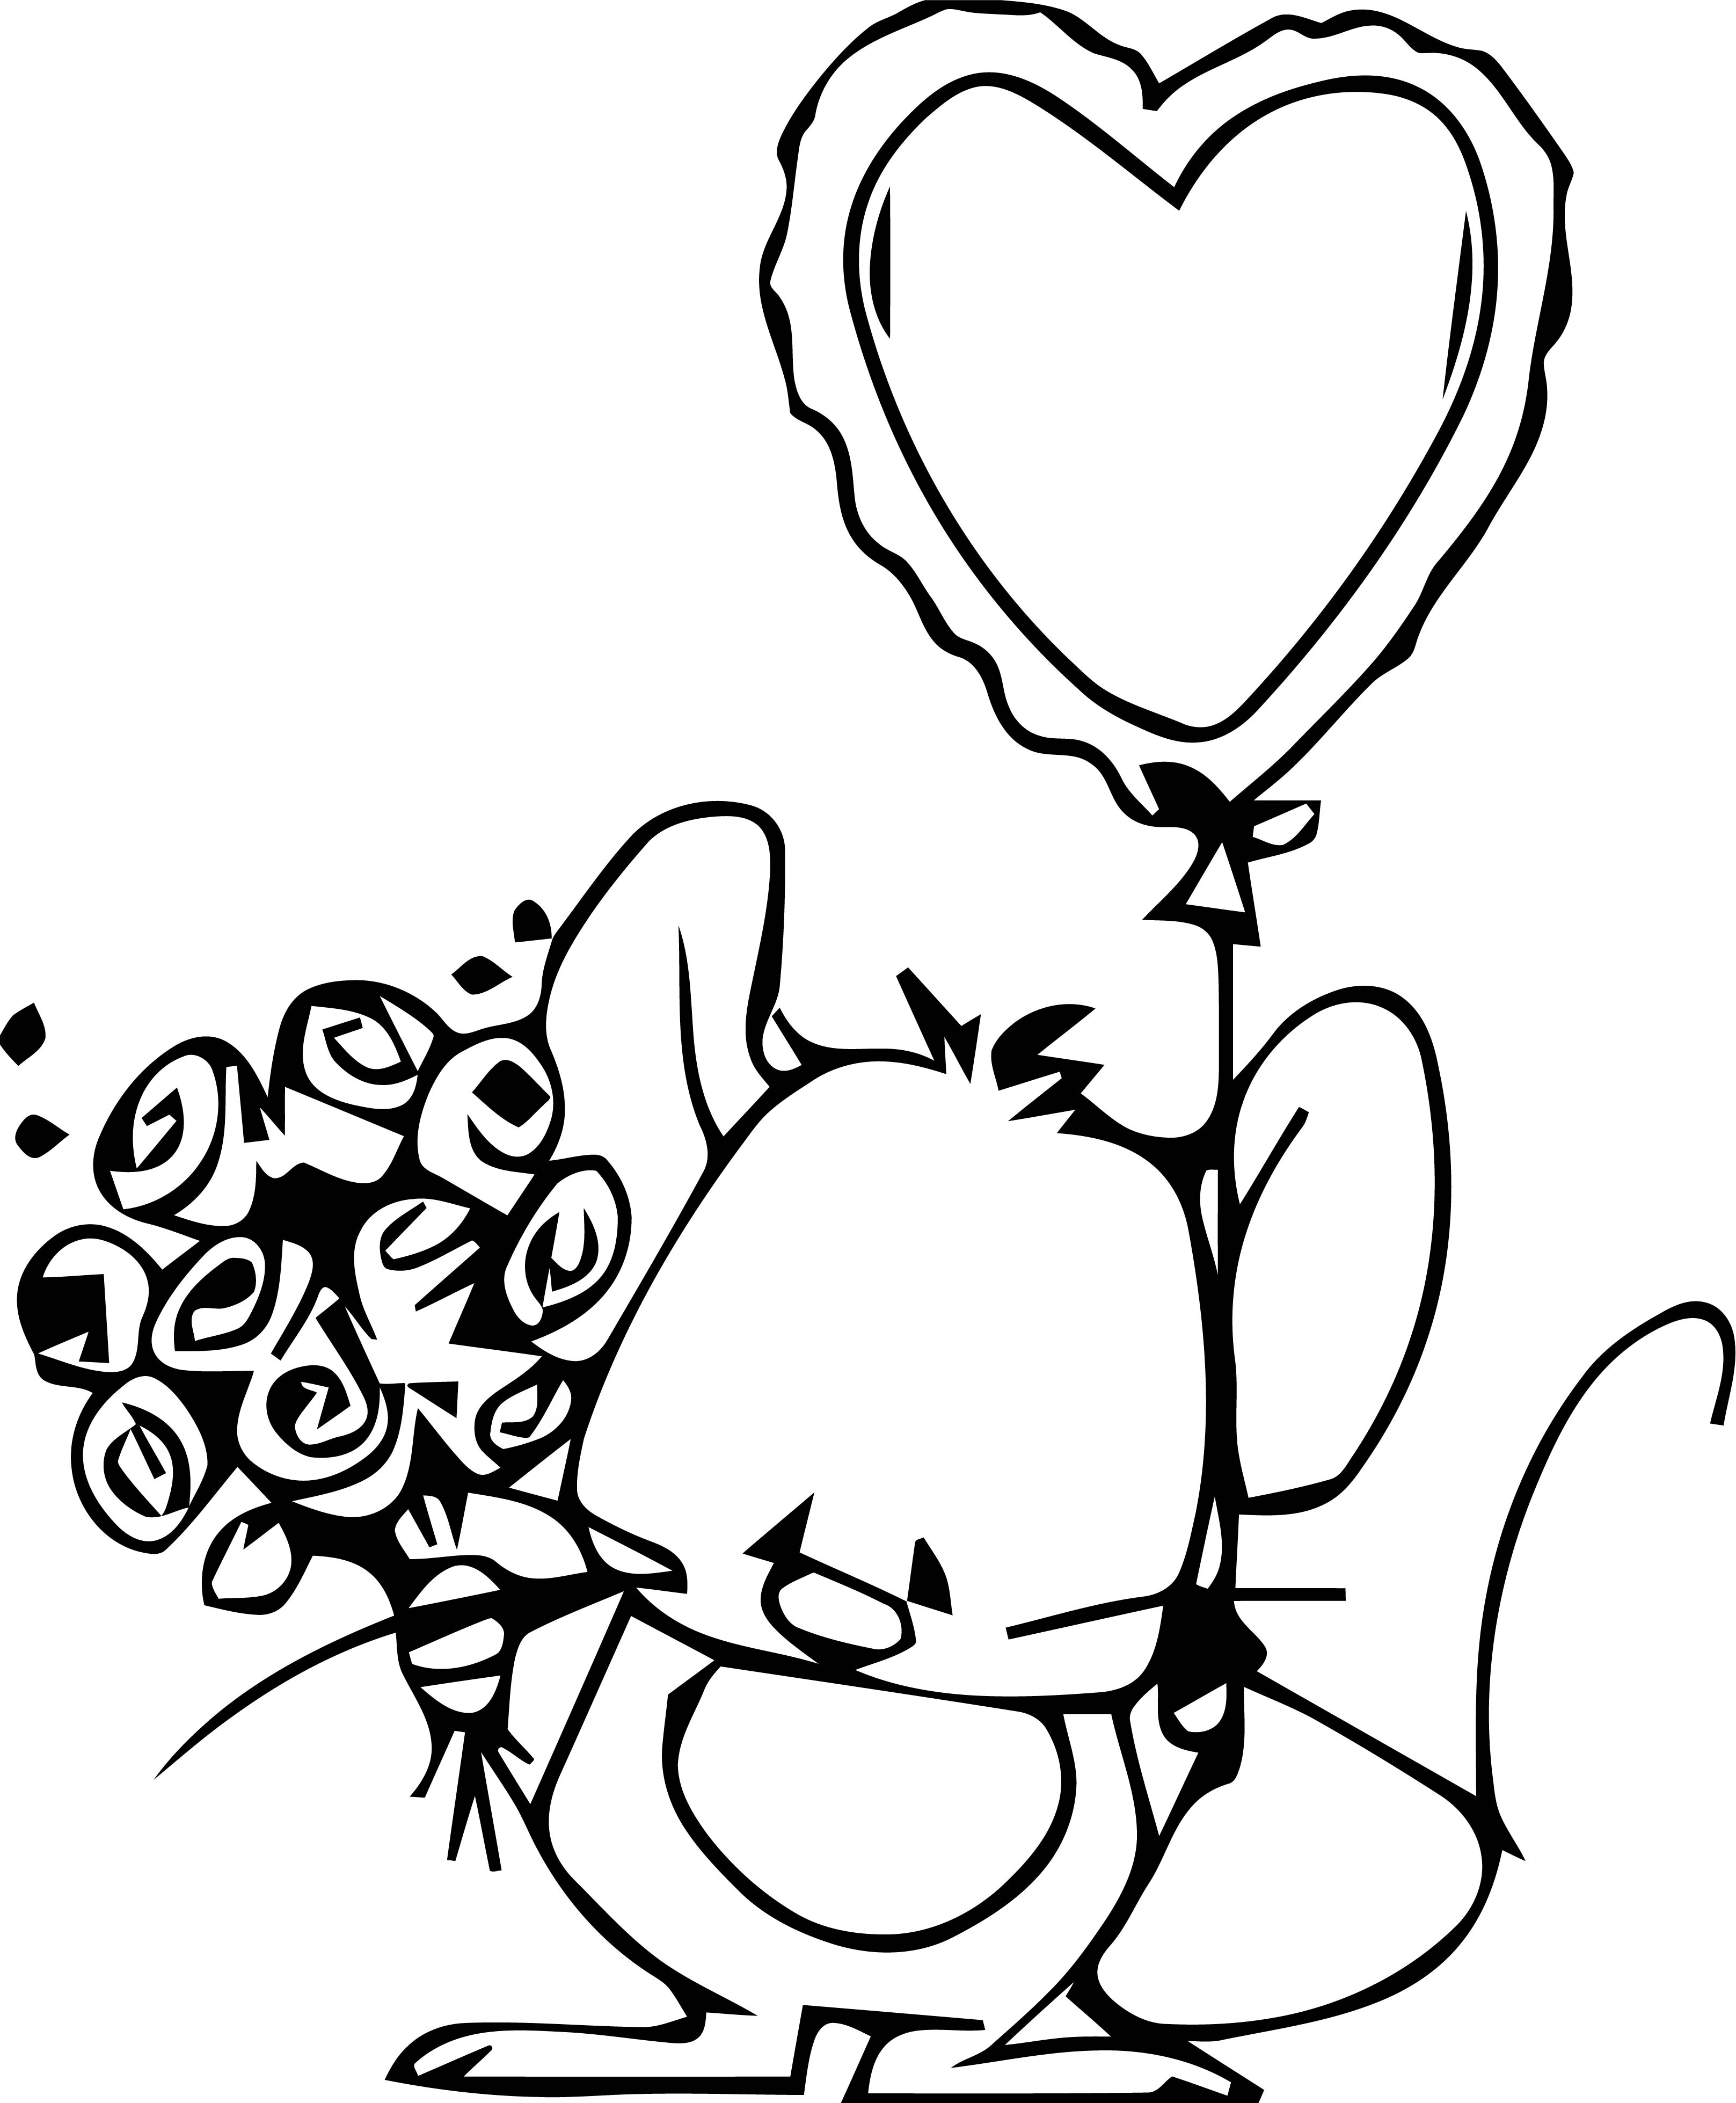 Mouse Jpeg Coloring Page 118